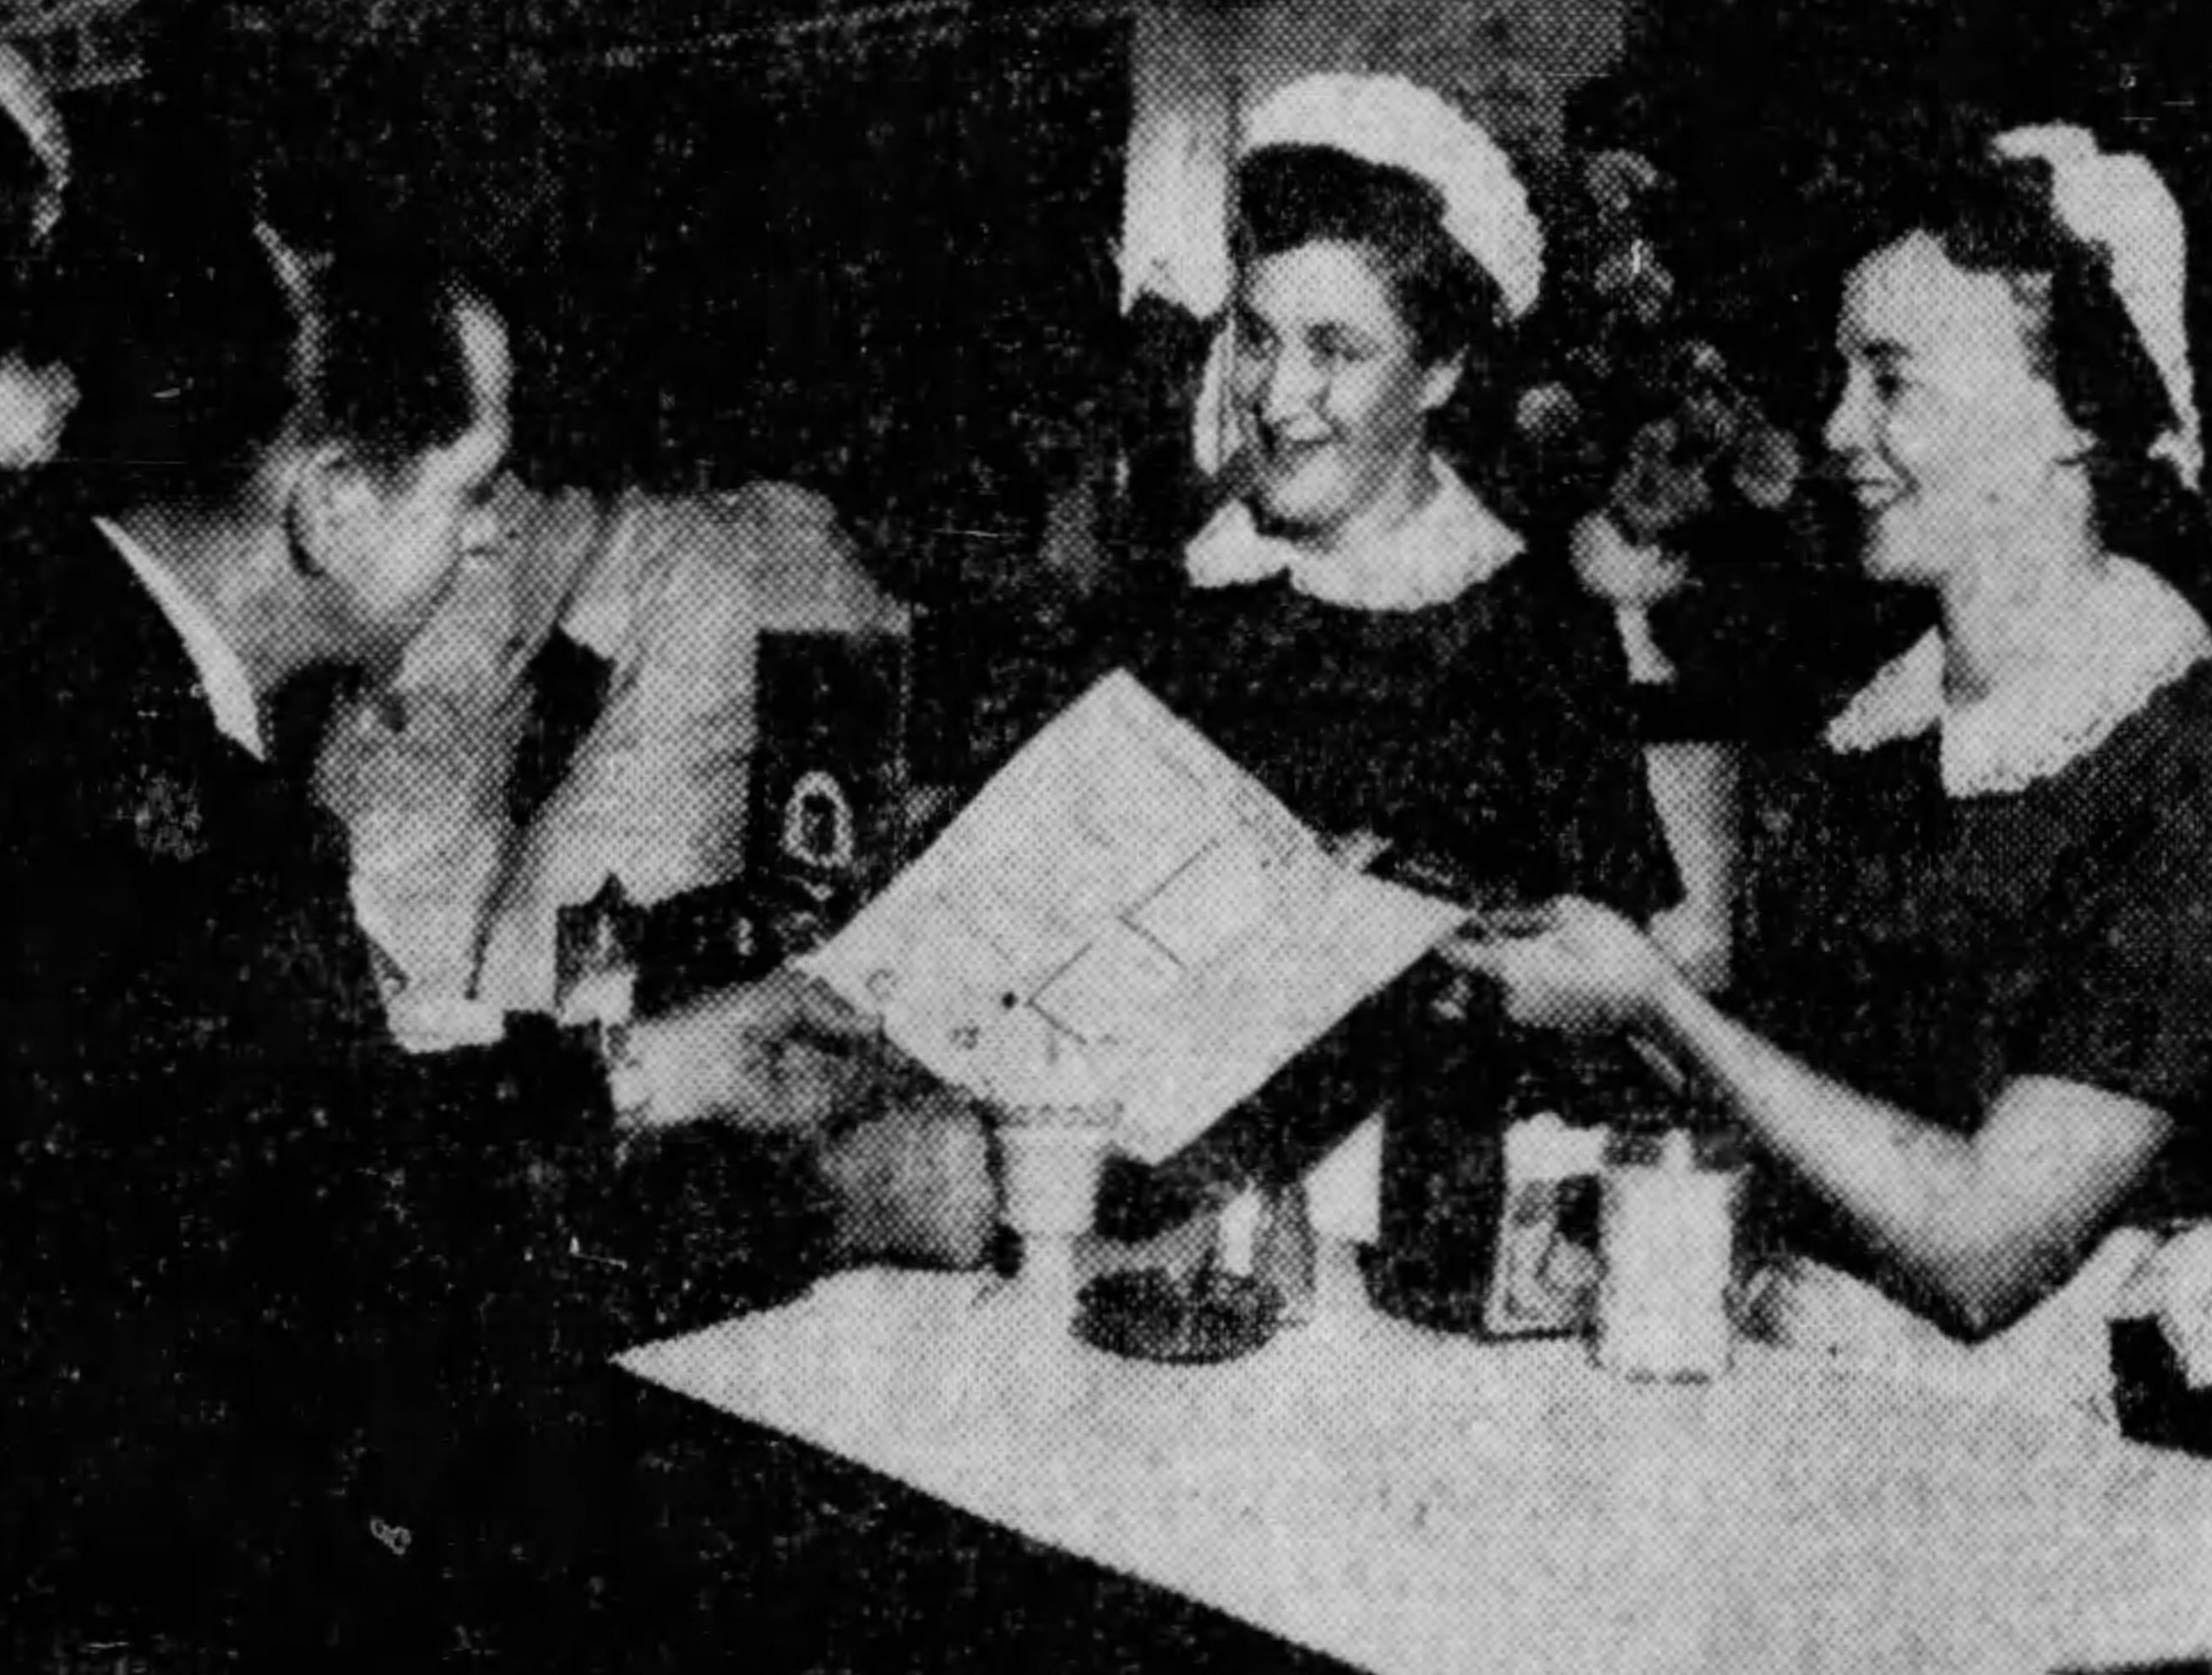 JANUARY 11, 1958: Pictured above is the type of service customers will receive when dining at Cincinnati's newest restaurant. Lloyd Hathaway has a staff of 25 people to provide the finest food possible.